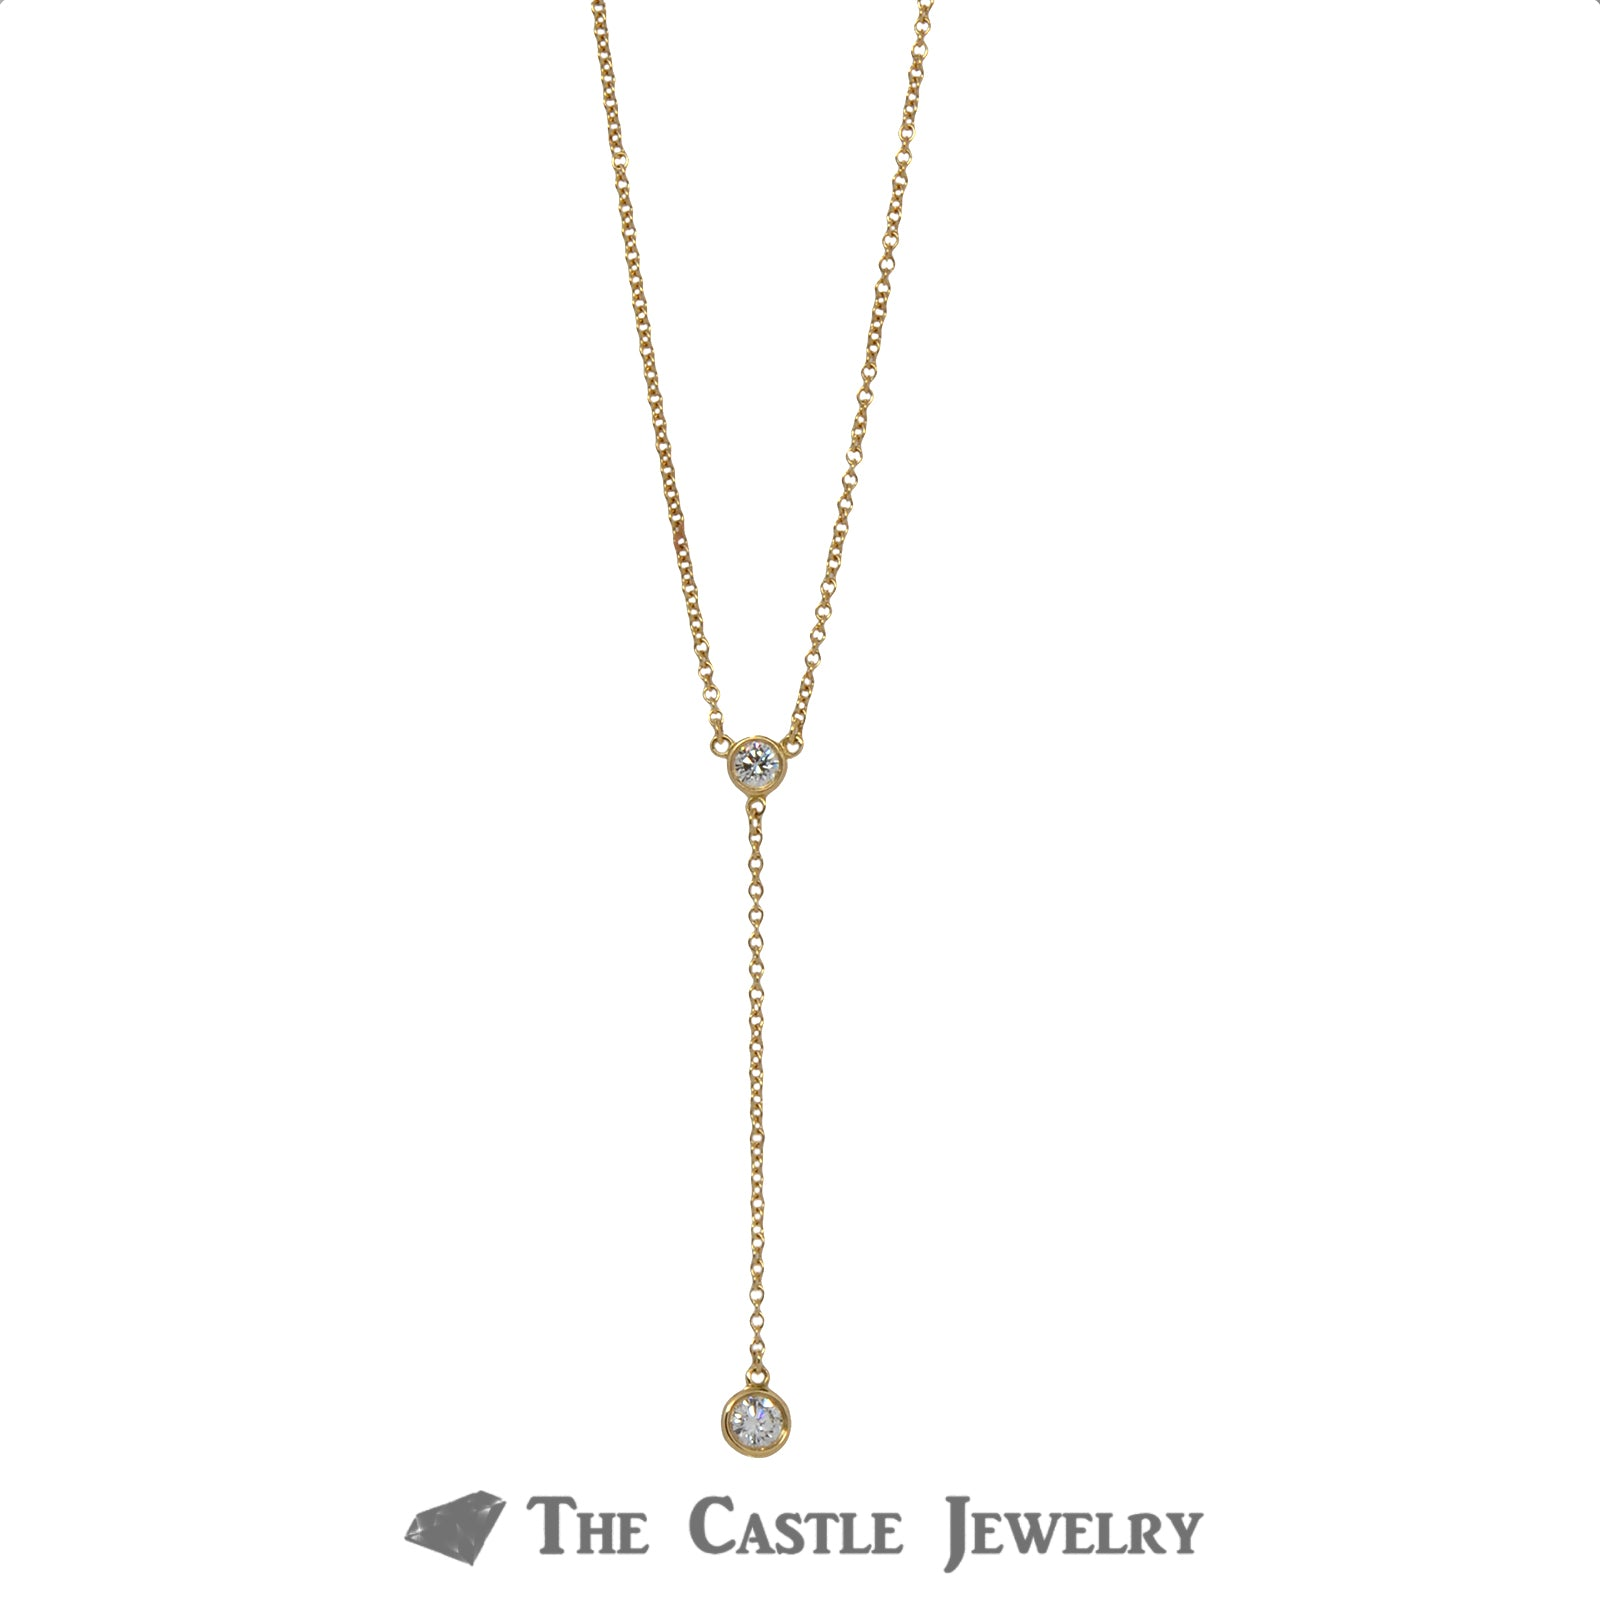 Tiffany & Co. Delicate Drop Necklace with .25cttw Diamonds in 18k Yellow Gold